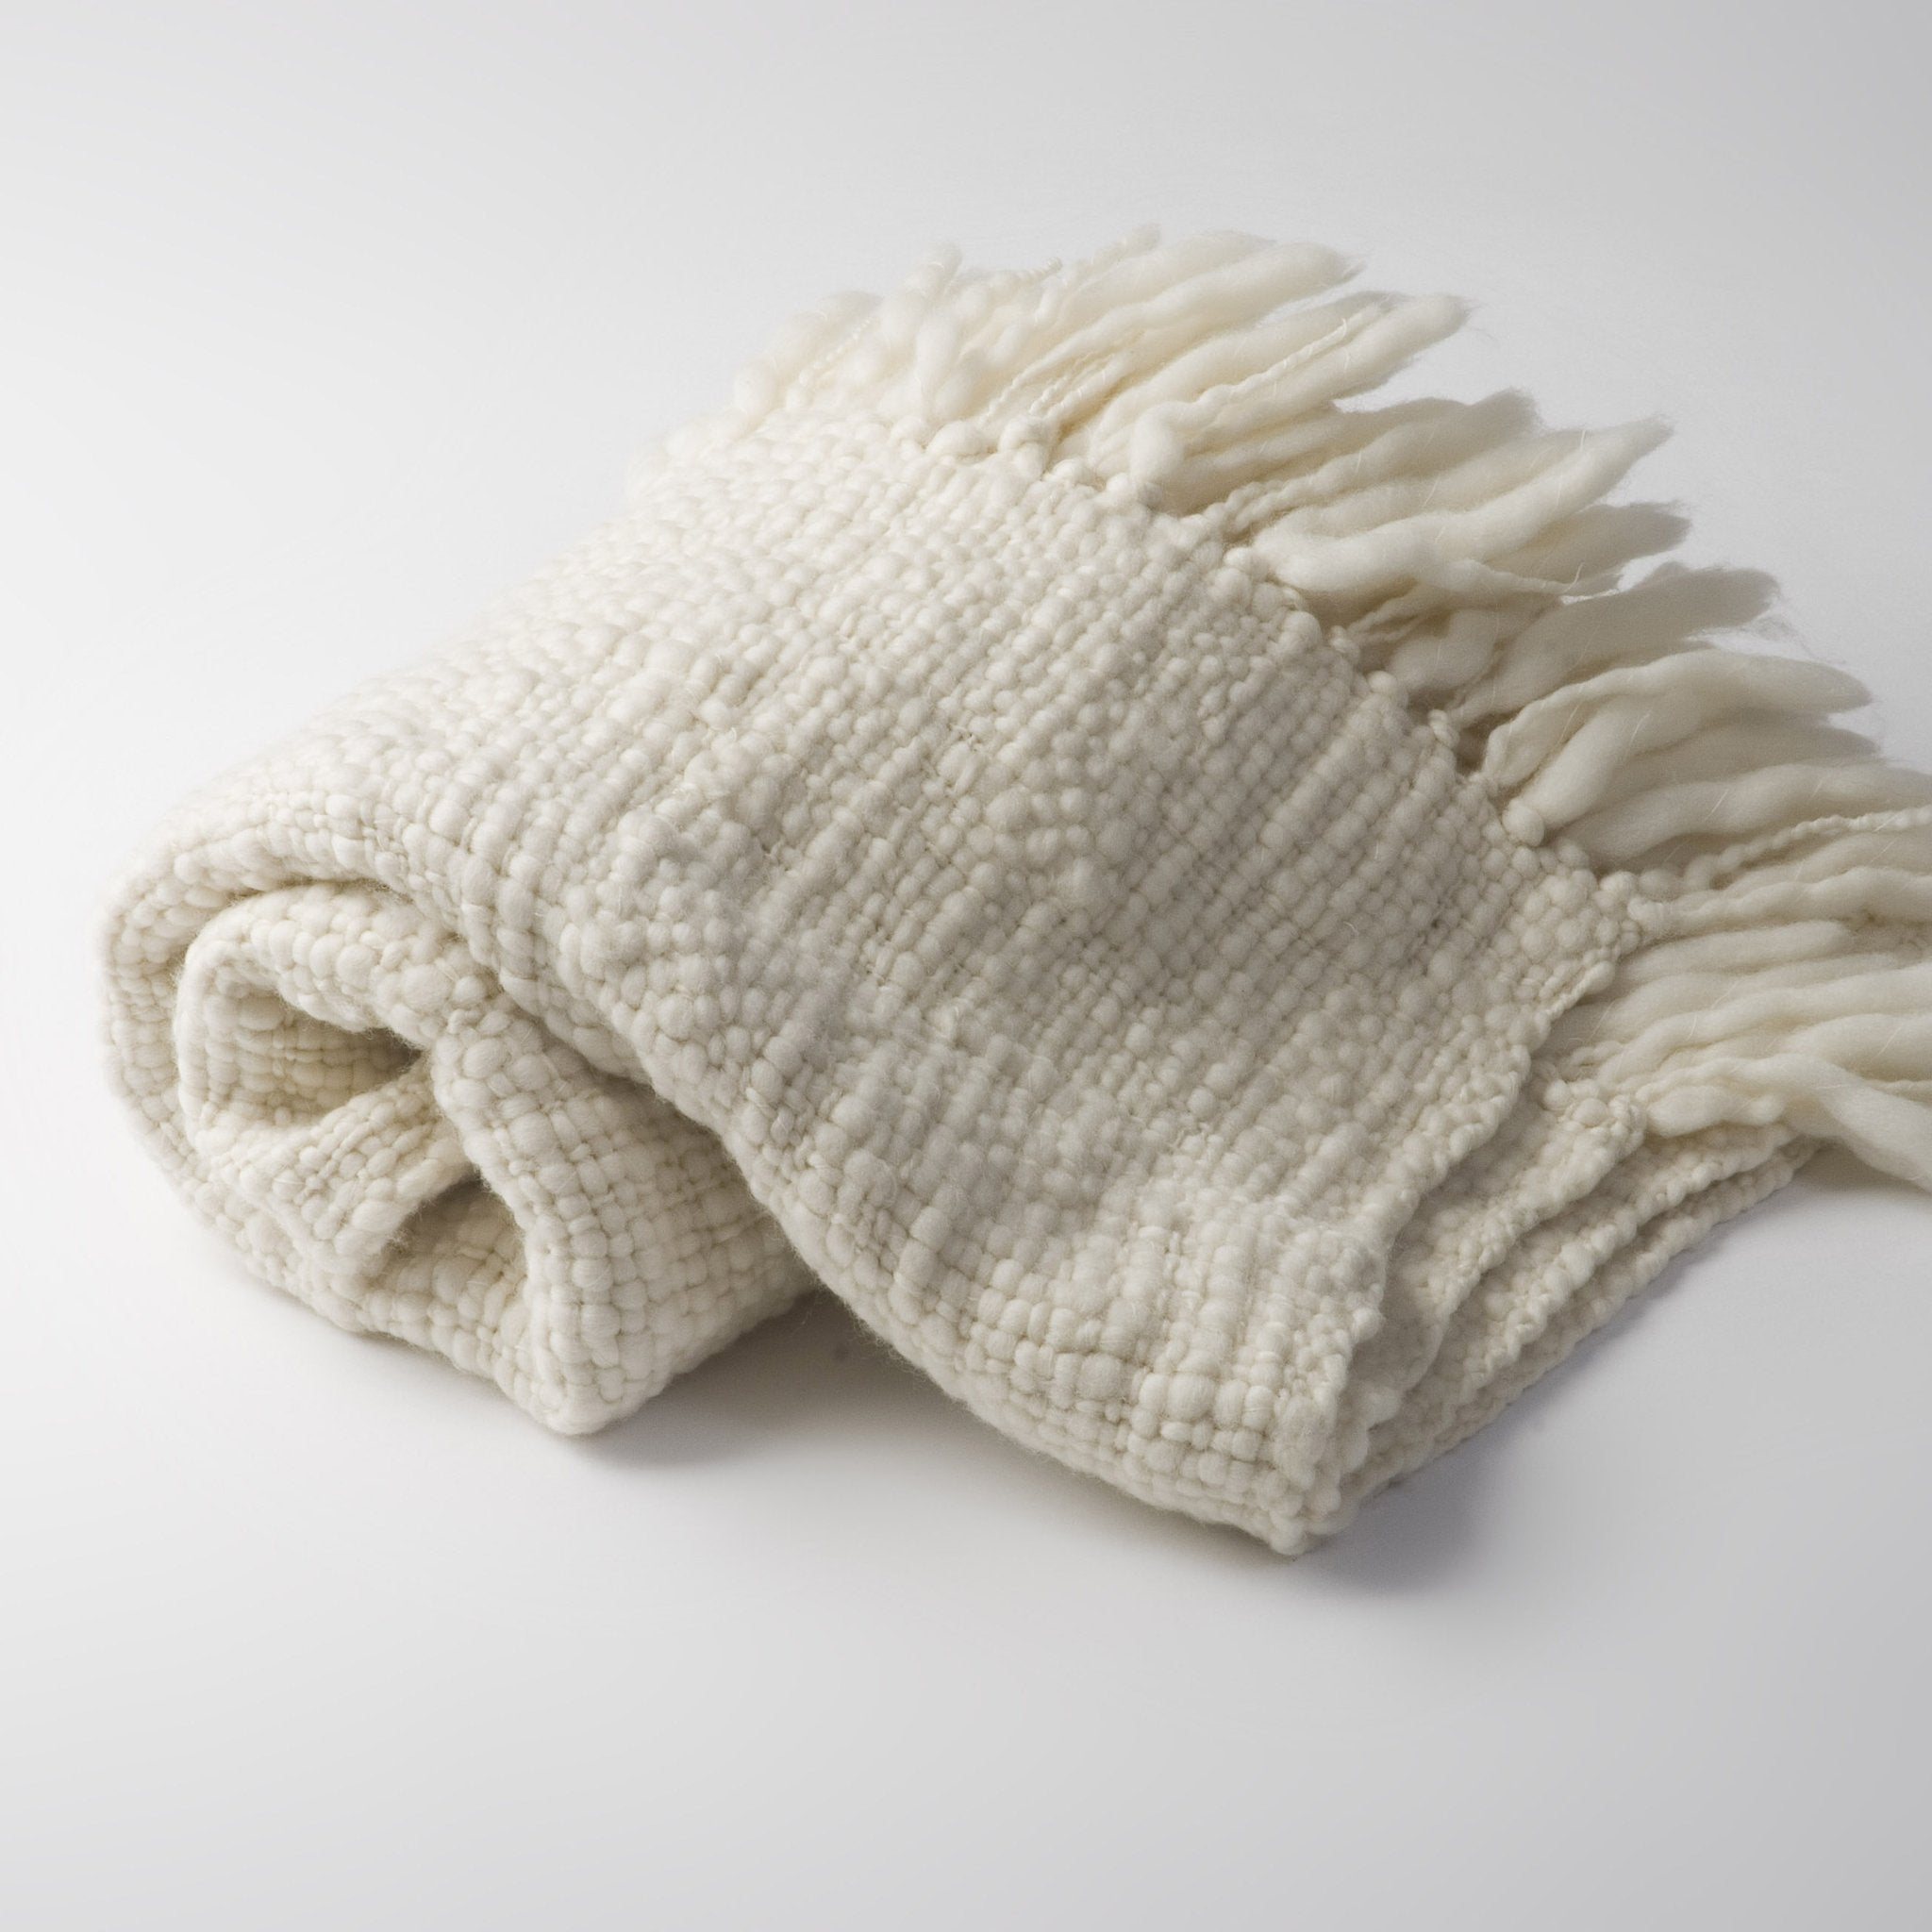 Handwoven baby merino wool blanket natural